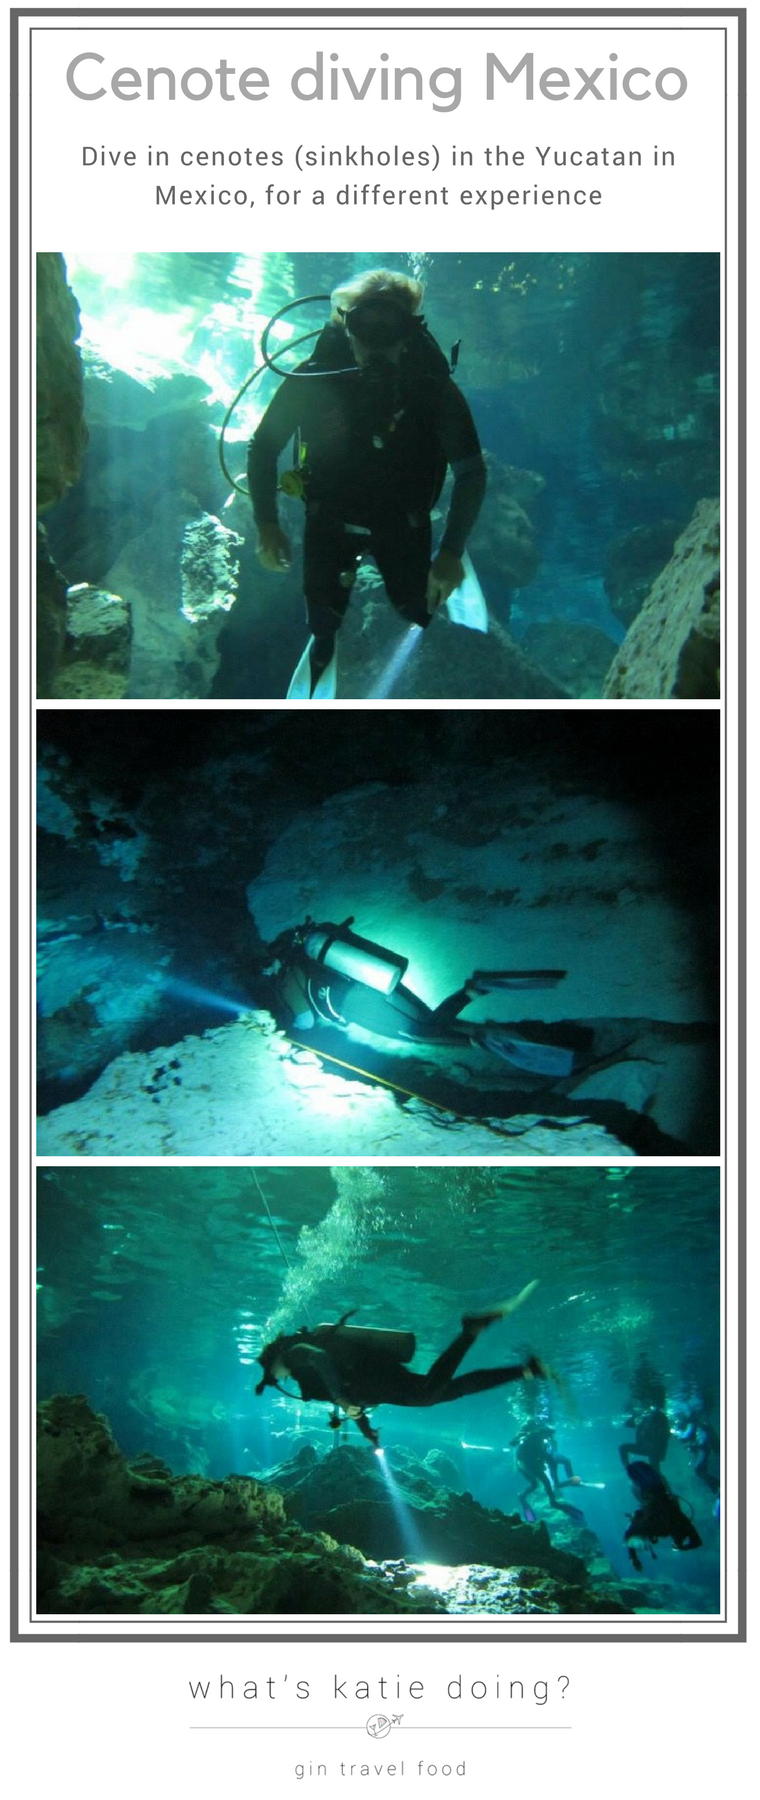 Cenote Diving Mexico image for Pinterest